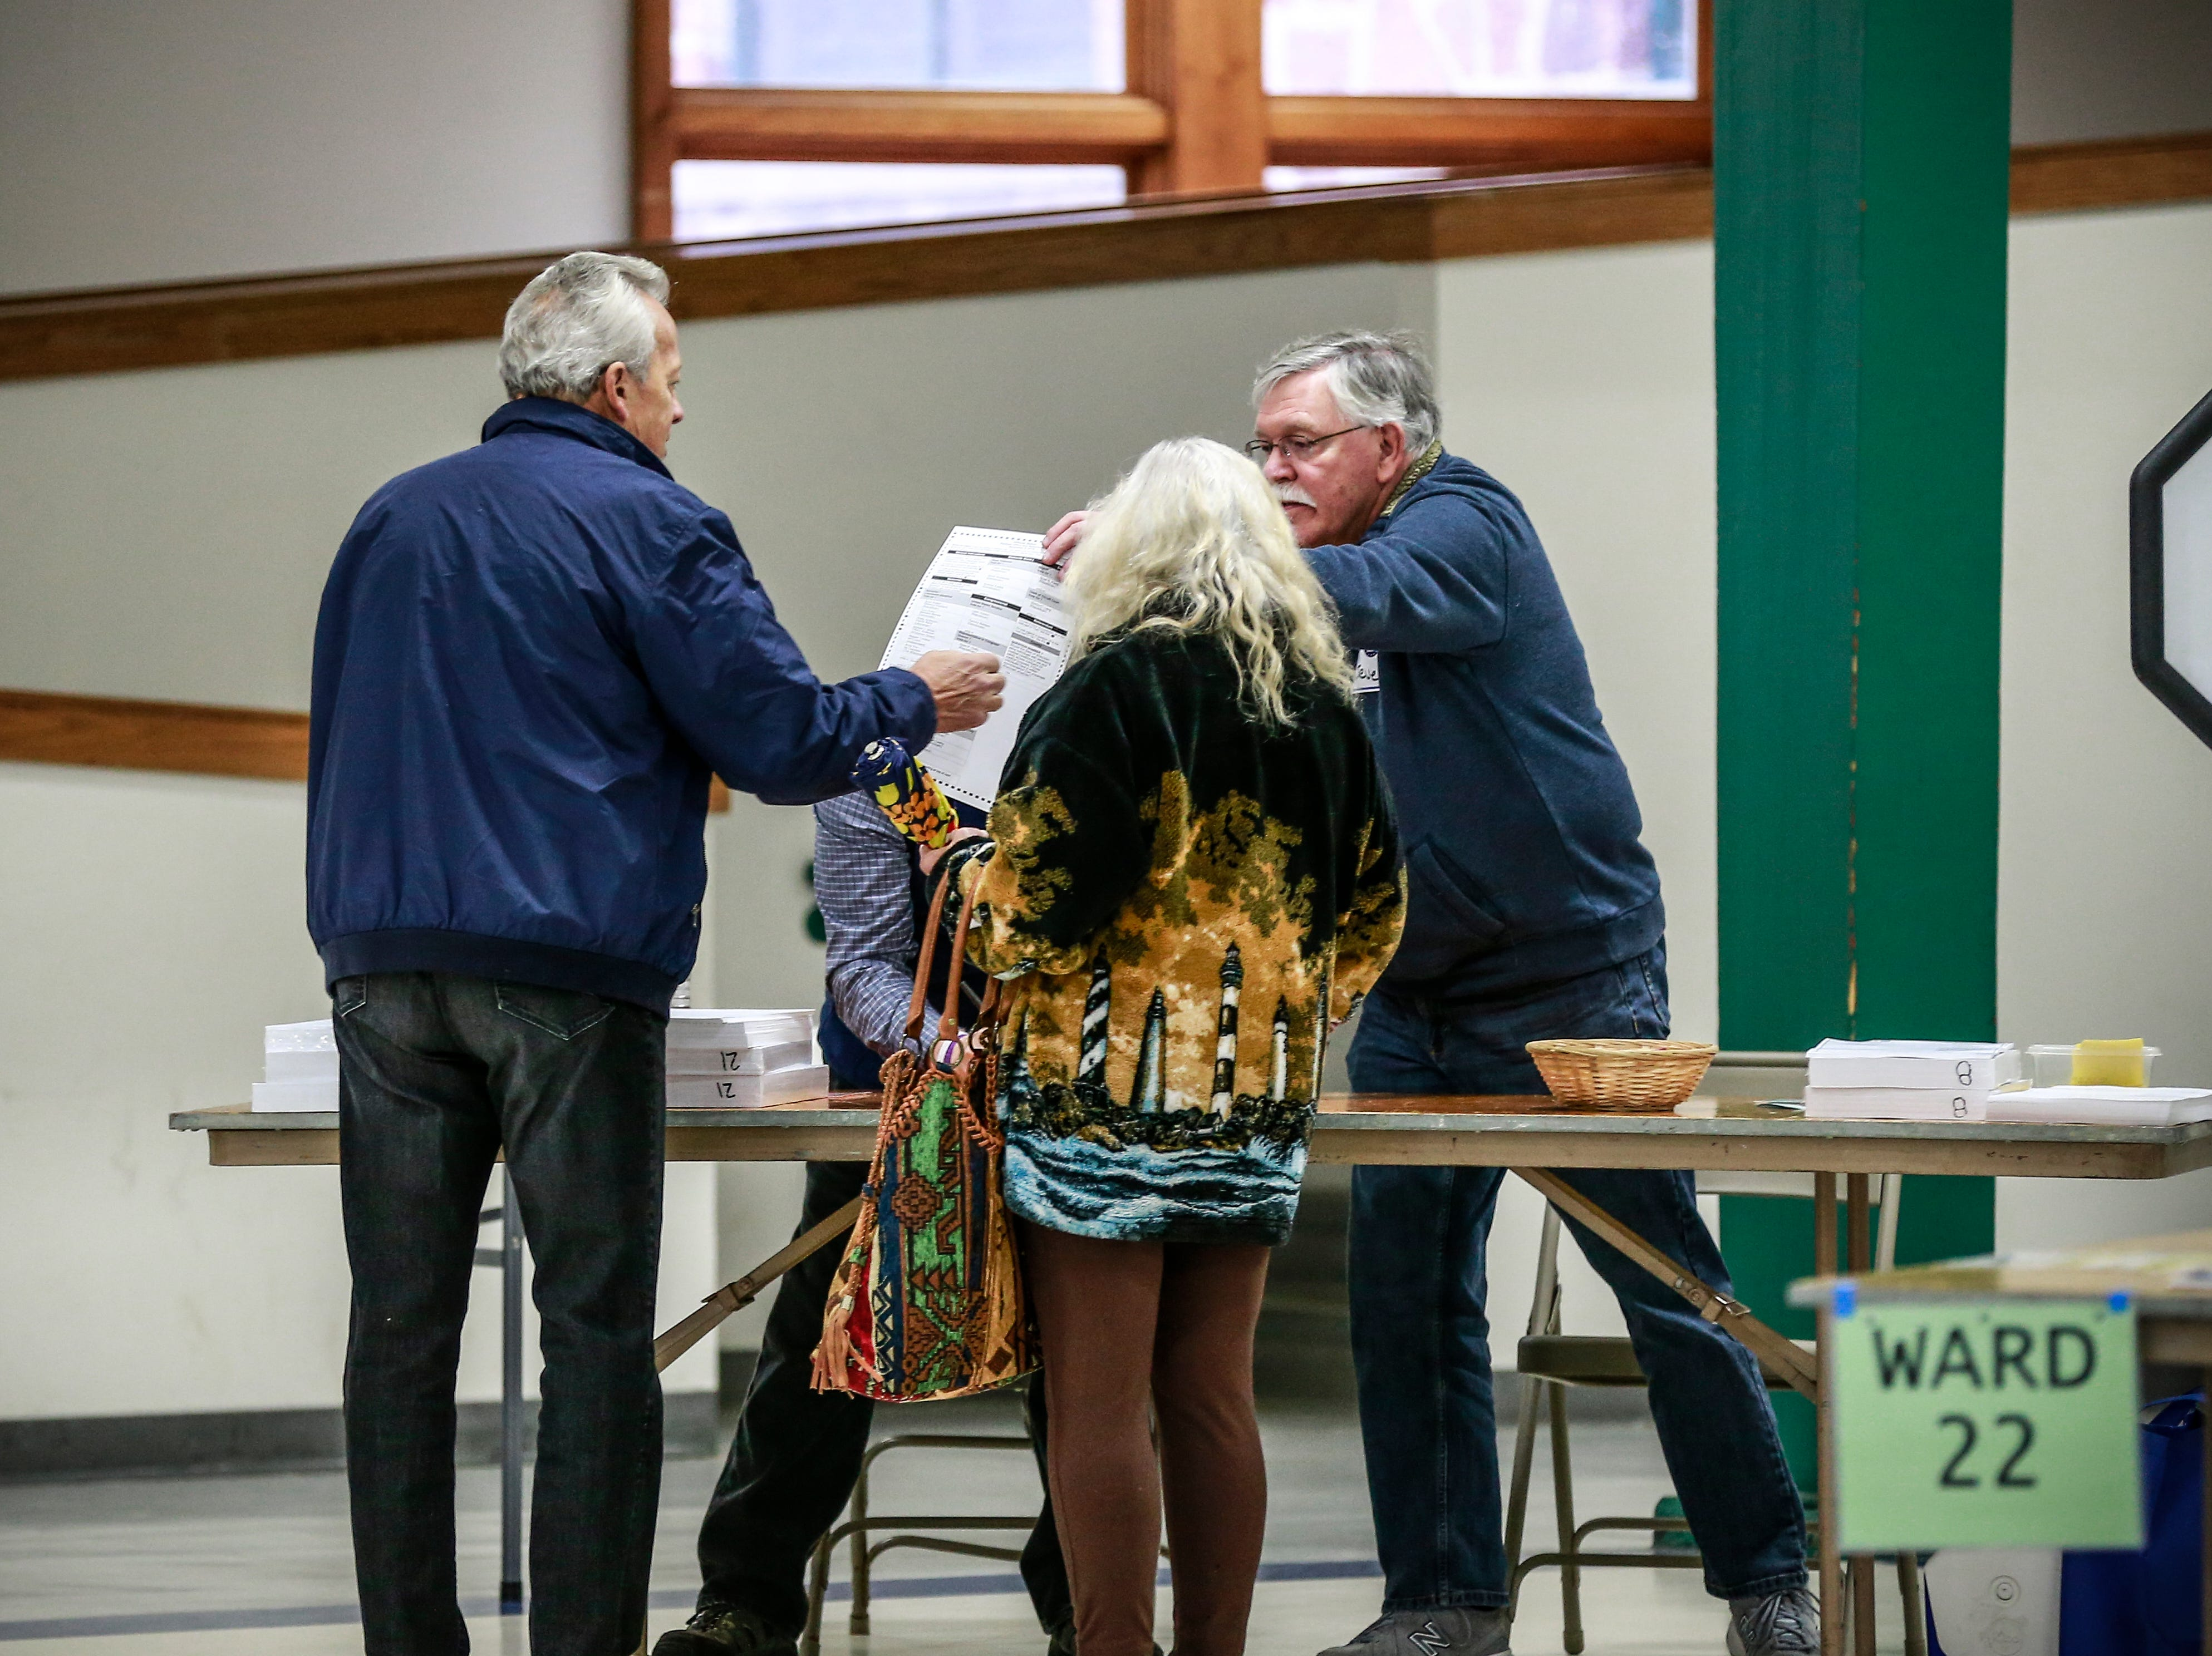 Voters receive their ballots Tuesday, Nov. 6, 2018, at the Youth Building in Marathon Park in Wausau, Wis. T'xer Zhon Kha/USA TODAY NETWORK-Wisconsin